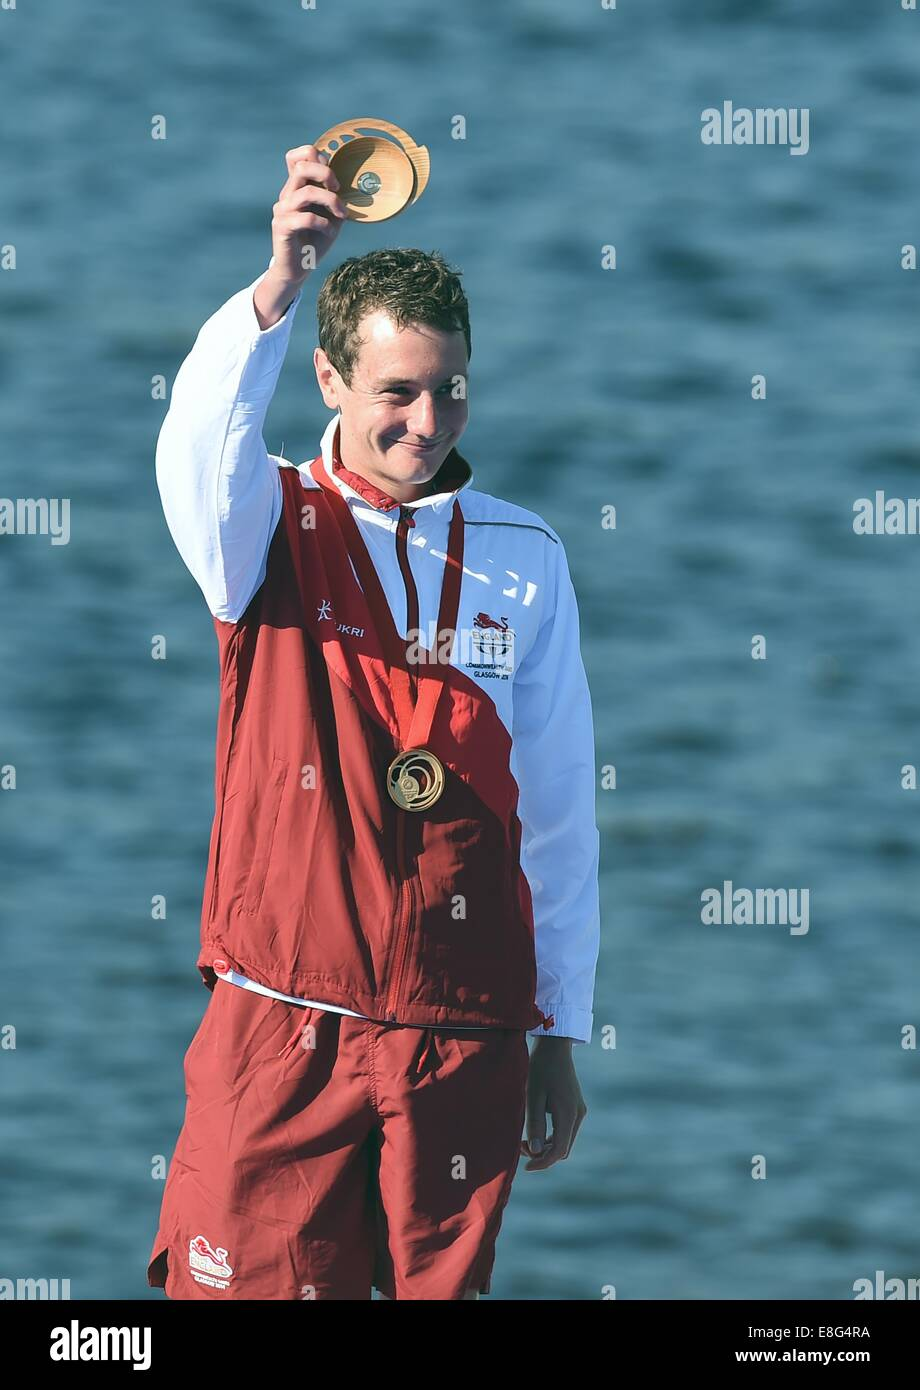 Alistair Brownlee celebrates winning the gold medal. Triathlon. Strathclyde Country Park, Glasgow, Scotland, UK - Stock Image